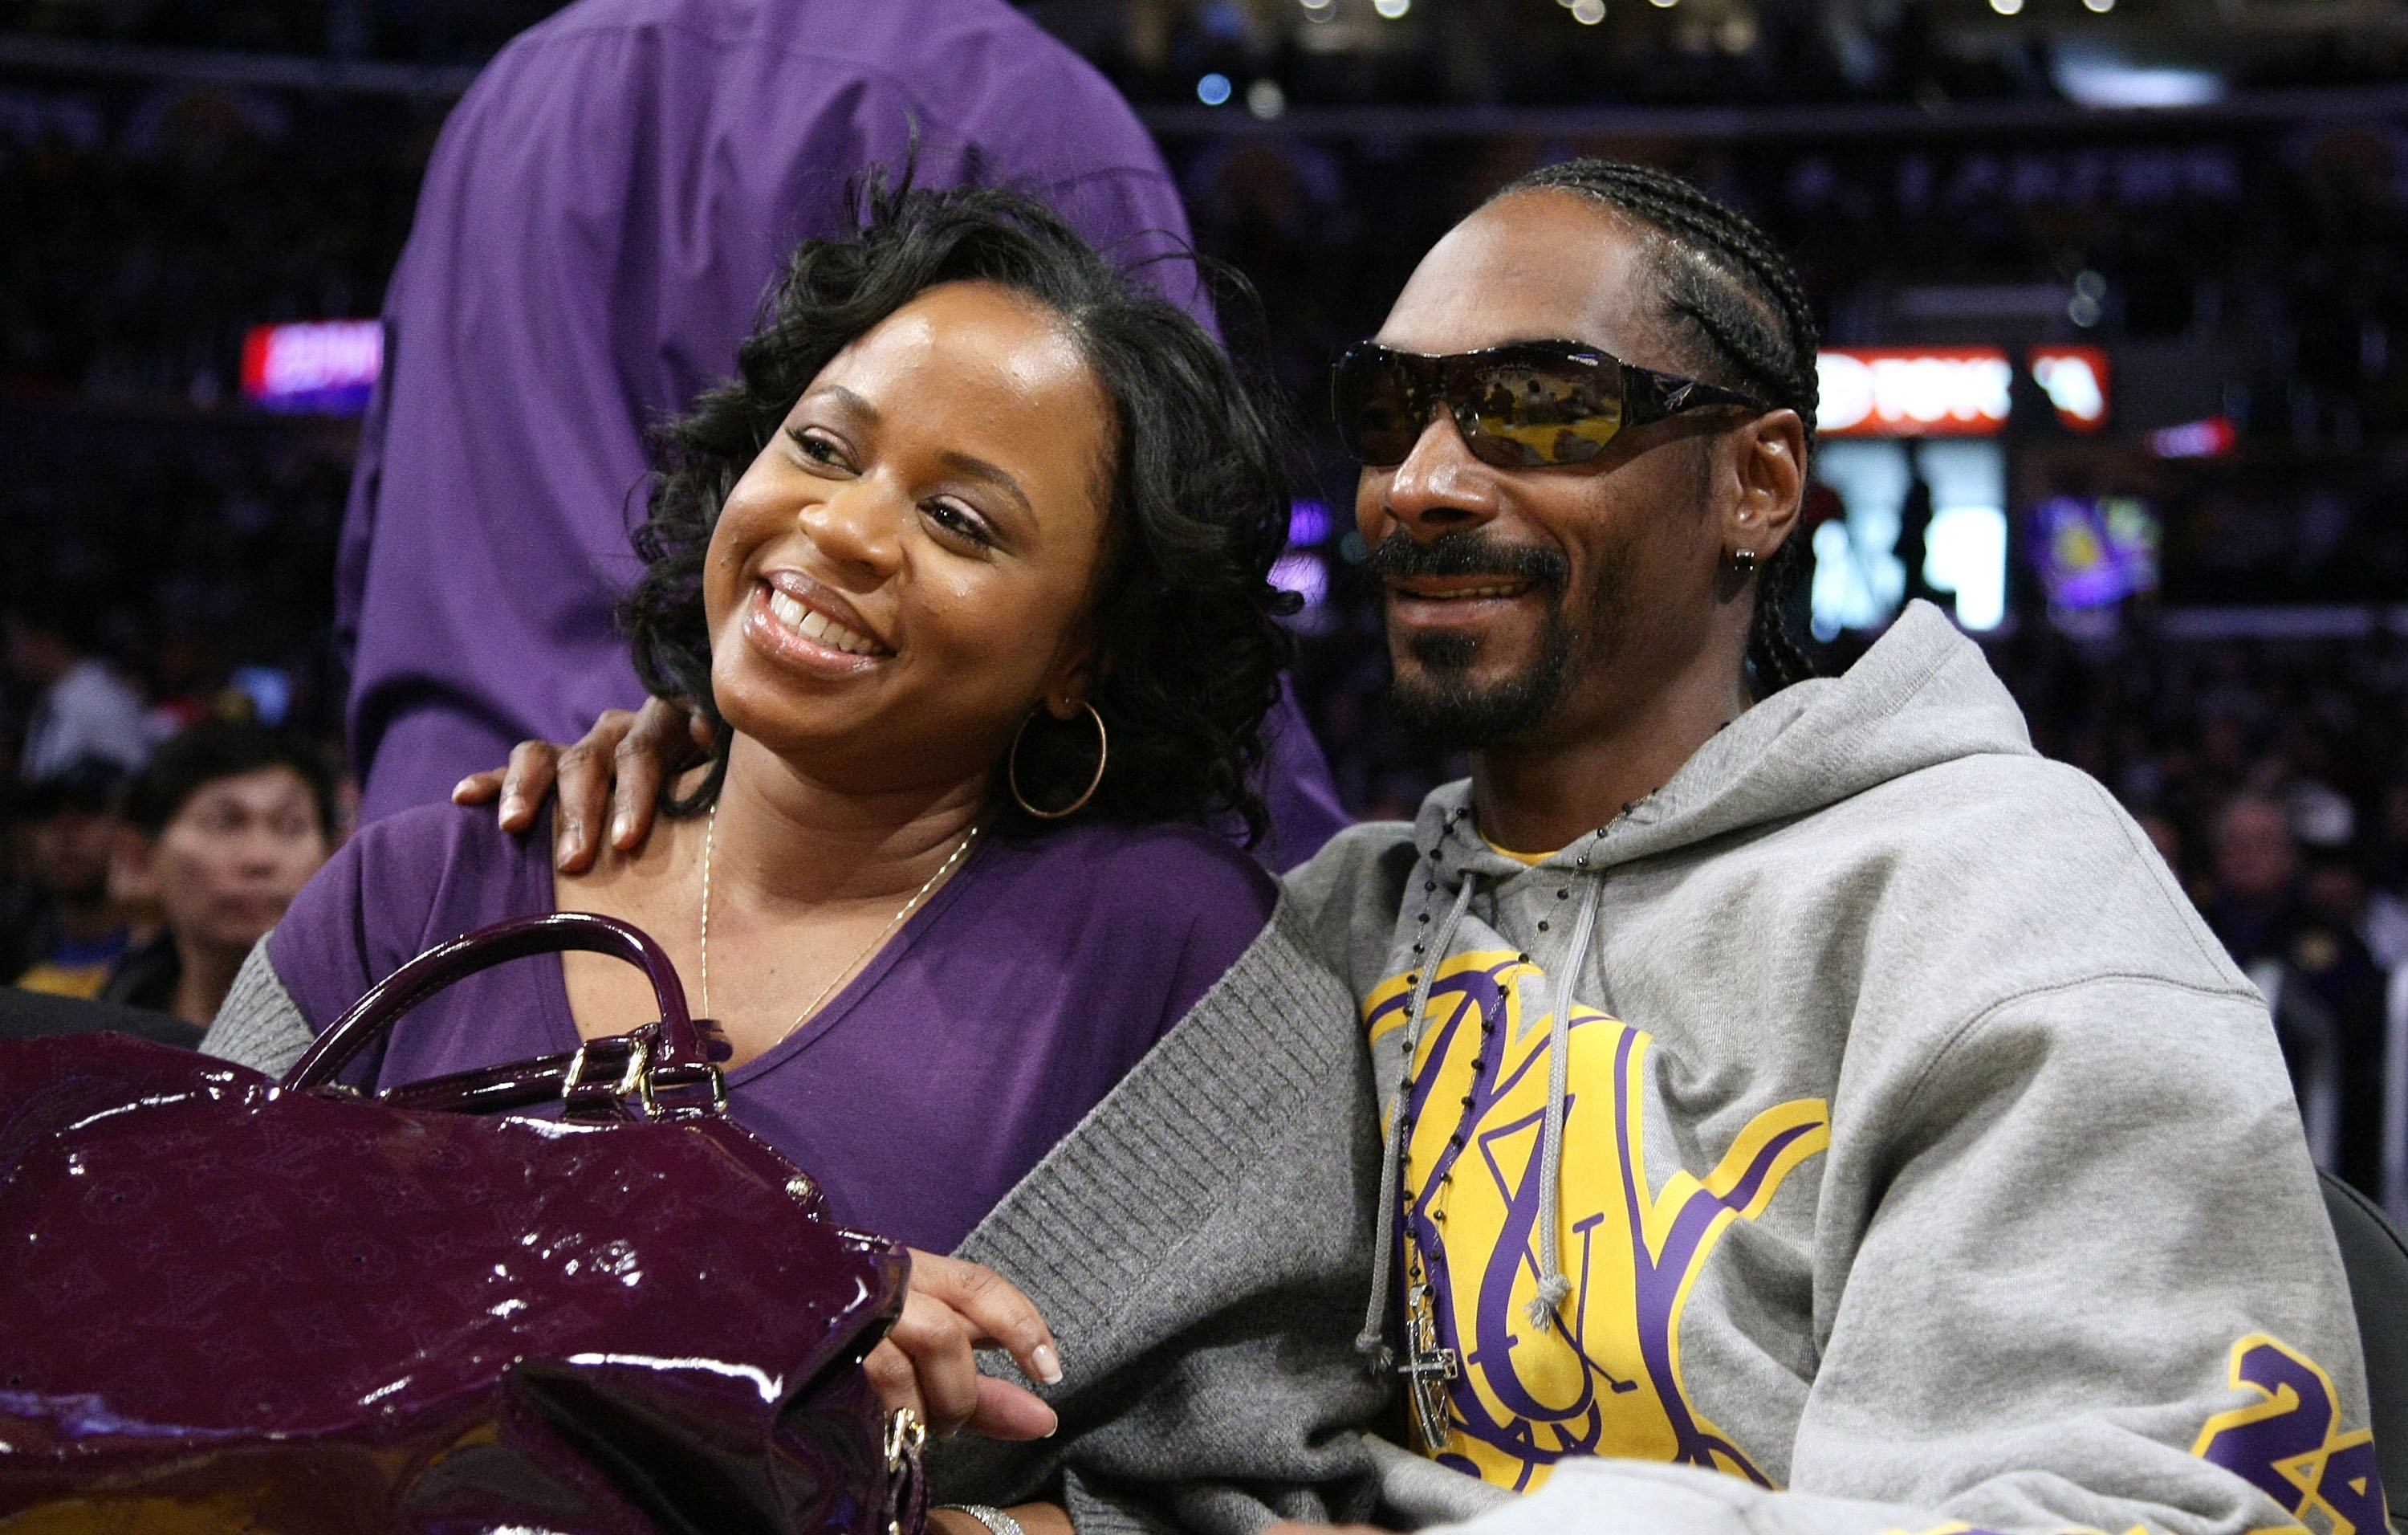 Image Credits: Getty images | Snoop Dog and Shante Broadus have three beautiful children together